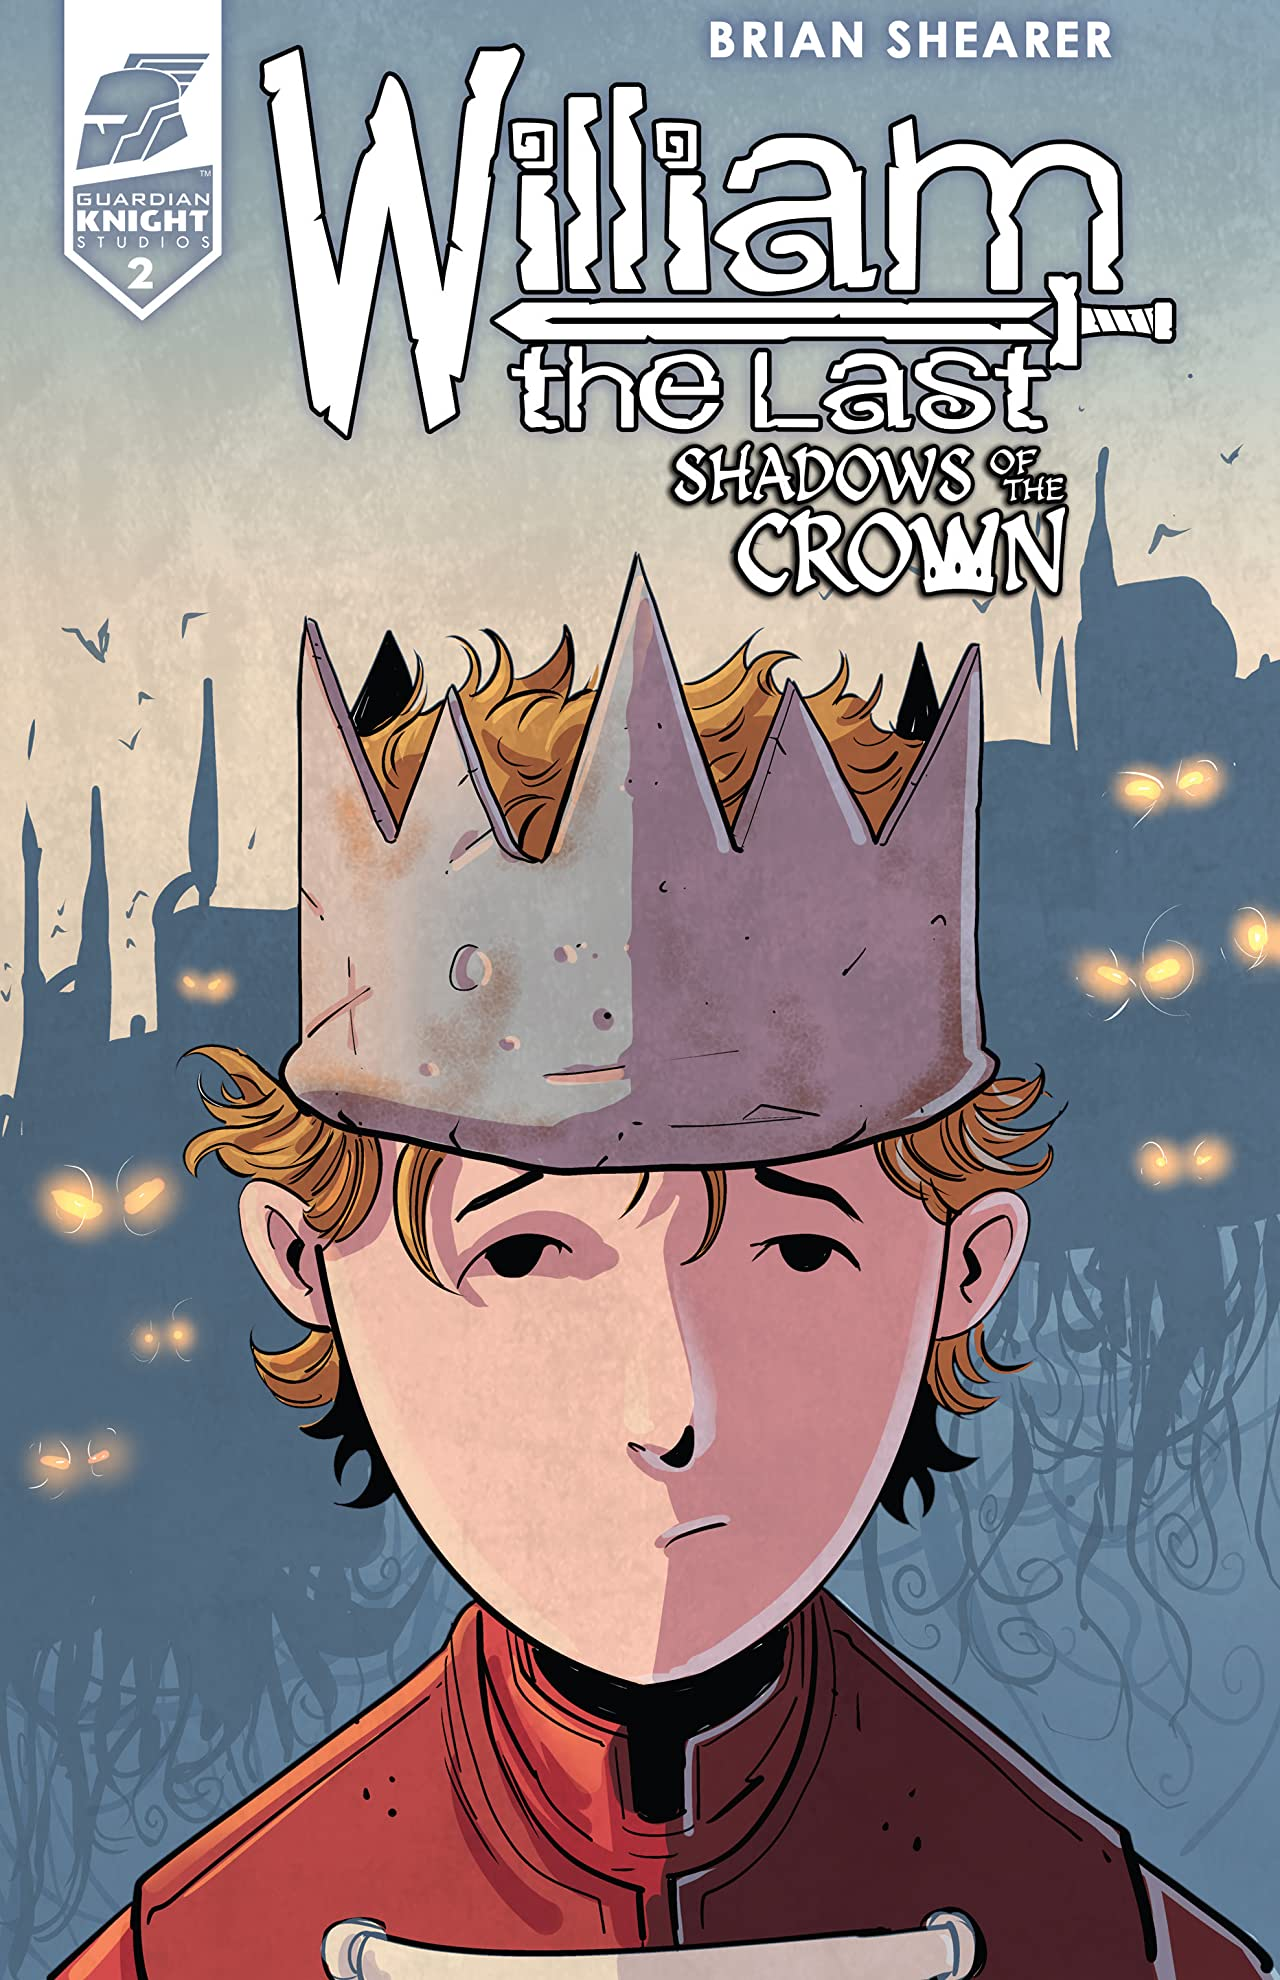 William the Last: Shadow of the Crown Vol. 3 #2